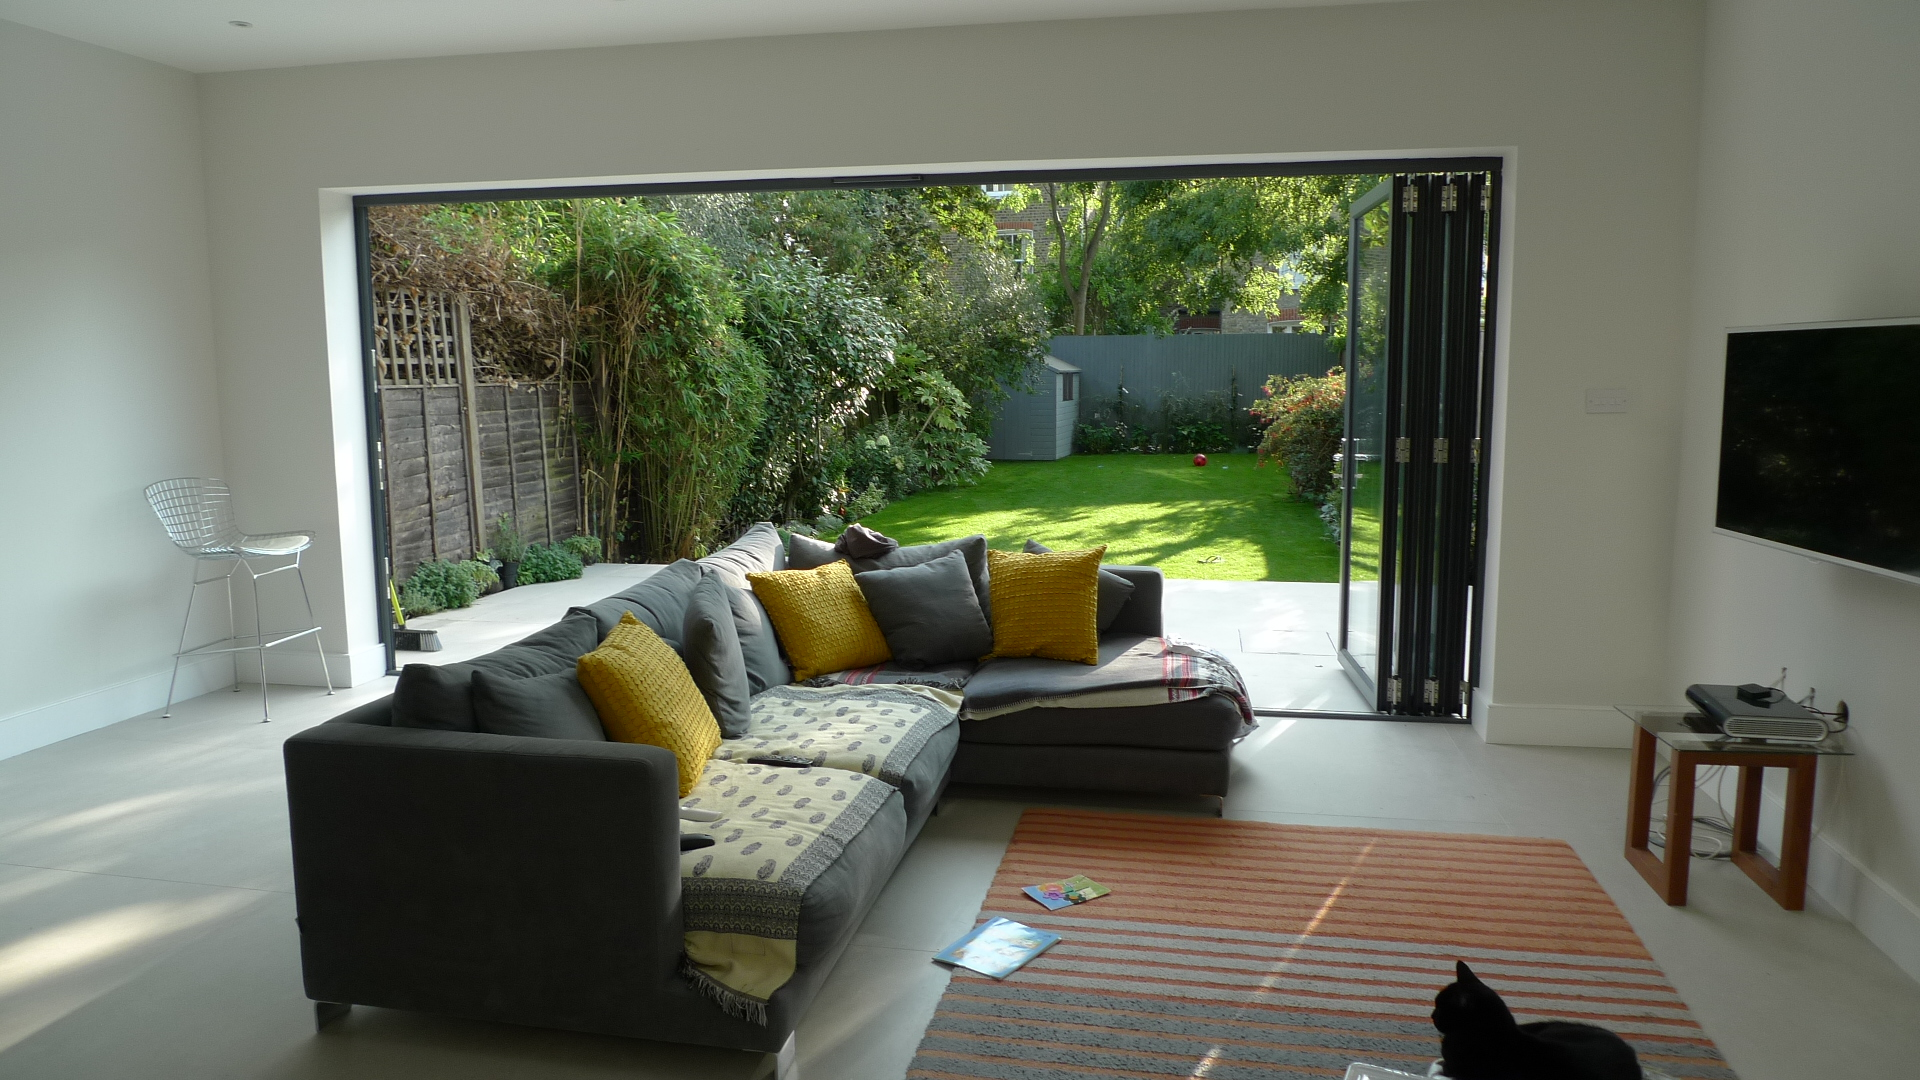 Modern Design Interior And Exterior Balham Tooting London London Gard